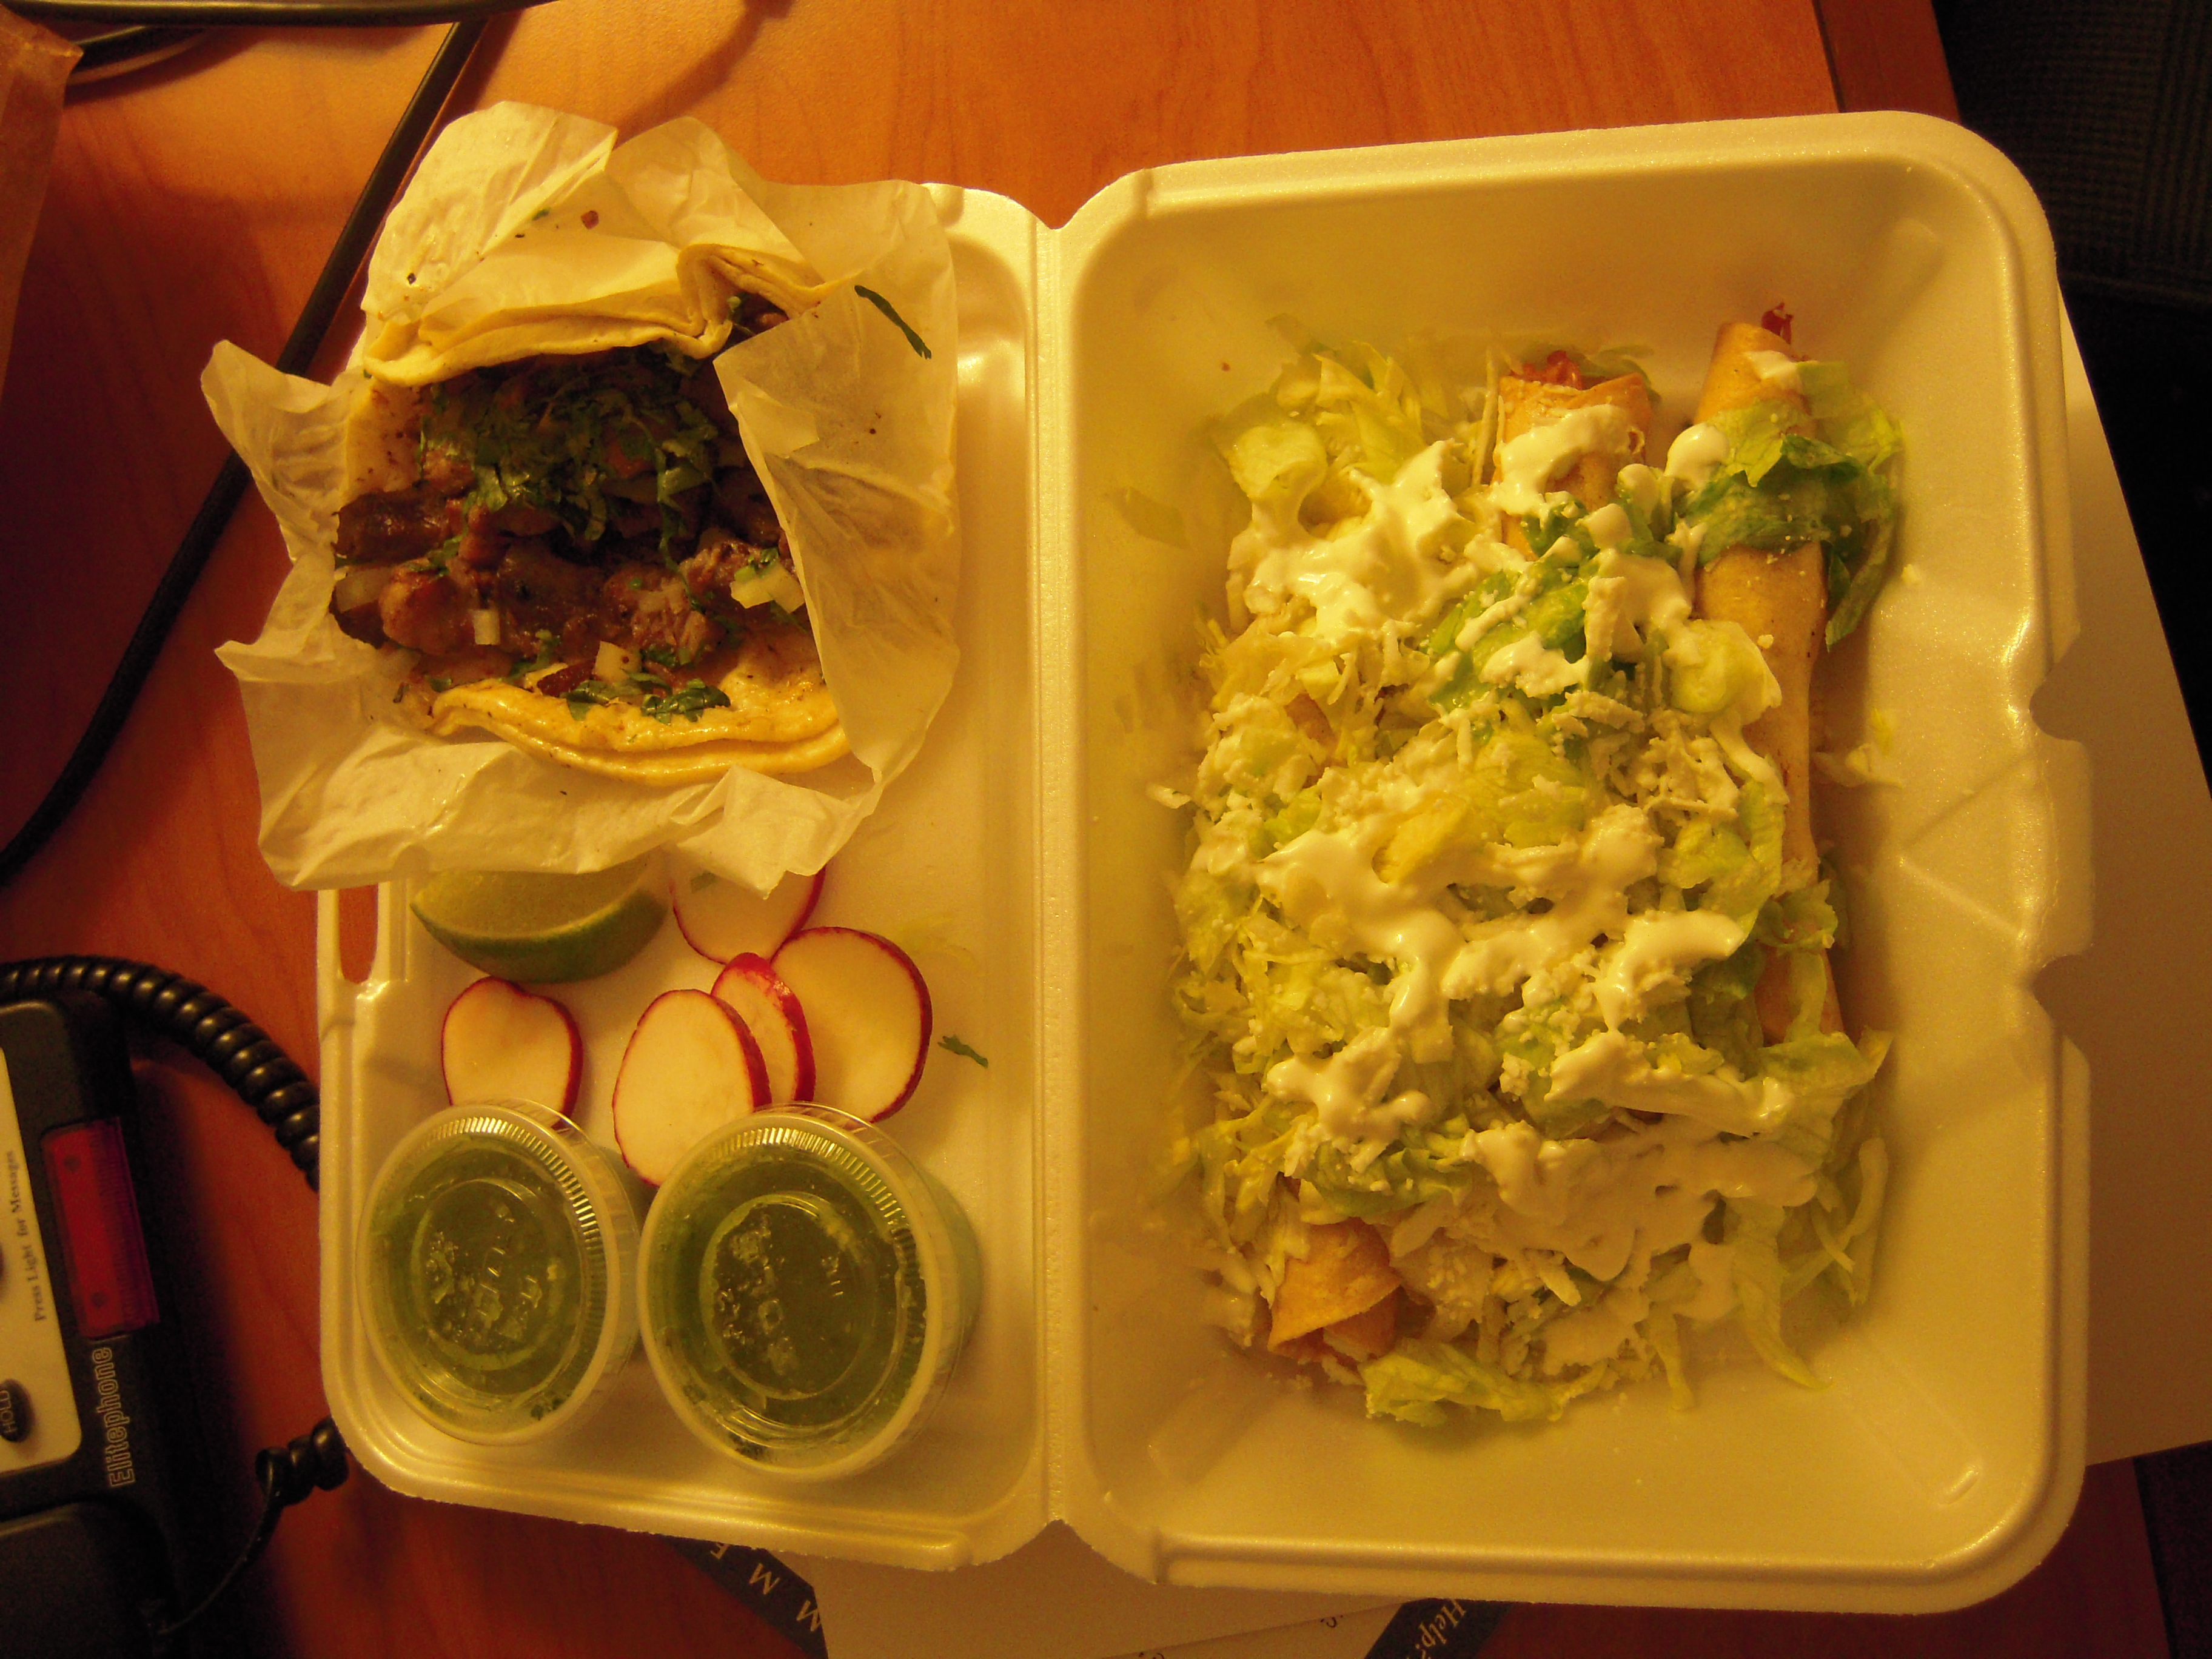 Astoria, Queens (NY) :: Flautas and a carnitas taco from La Flor de Puebla at Astoria Blvd and 38th. Super yummy late night snack with all the fixins, from salsa verde to lime slices and radishes. Real Mexican food!